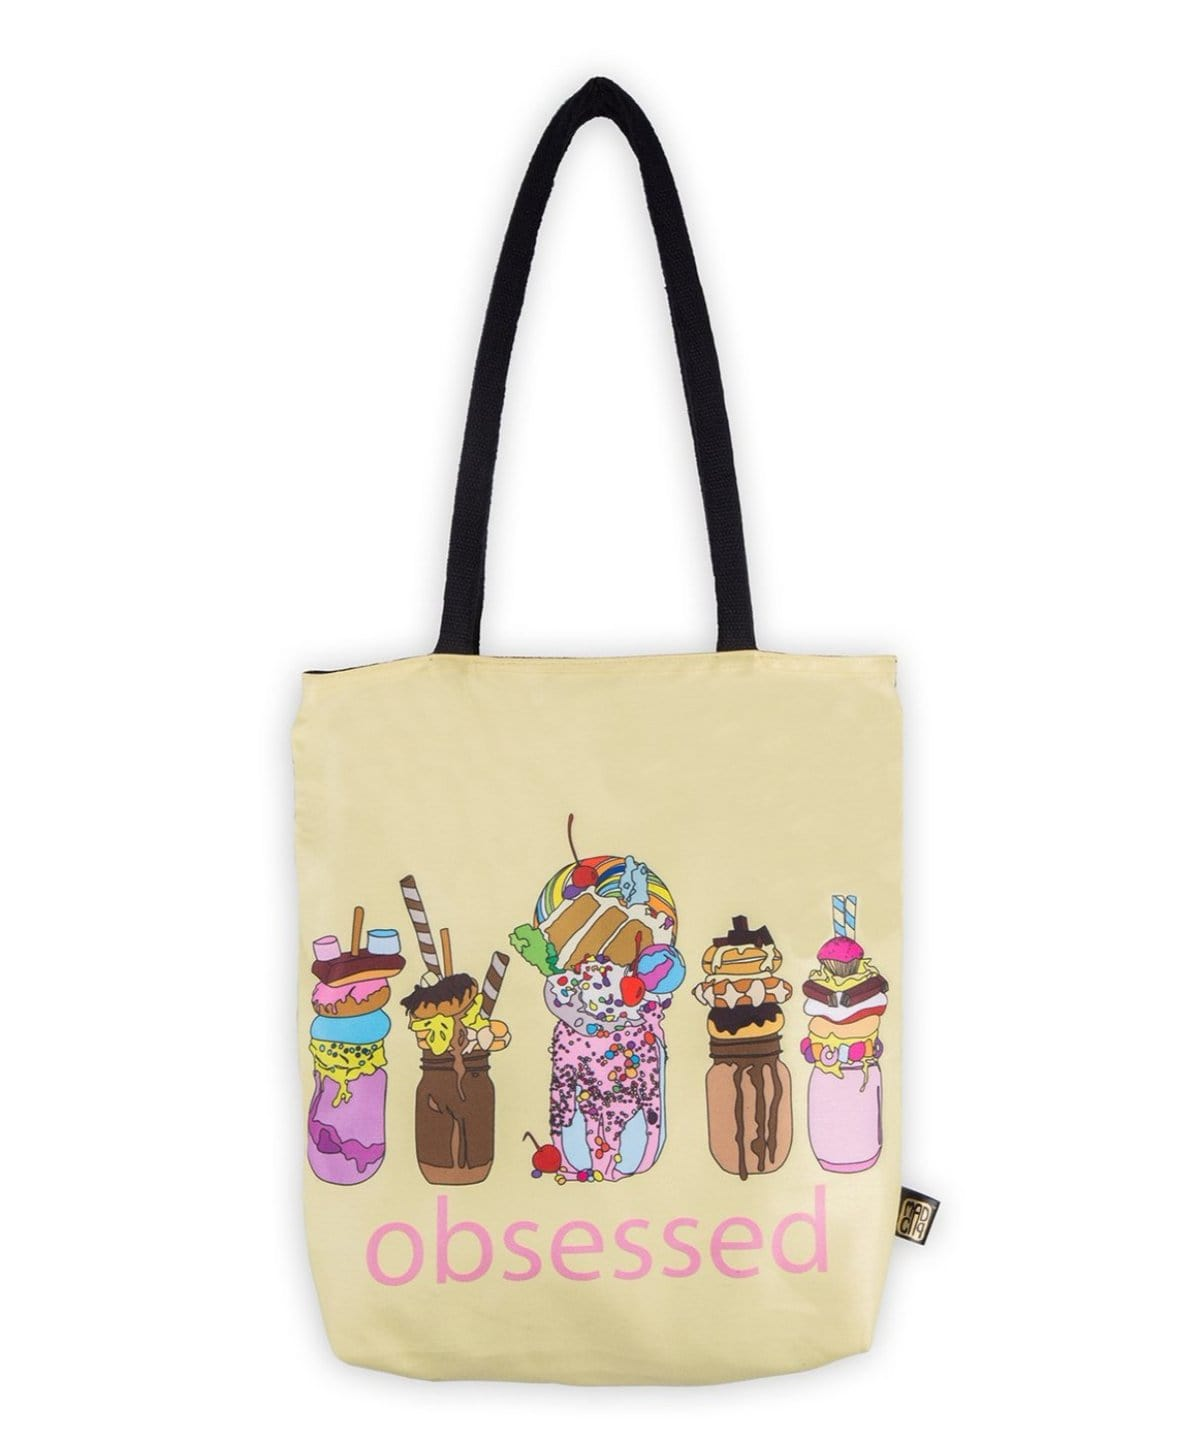 Obsession Tote Bag. Uptownie.